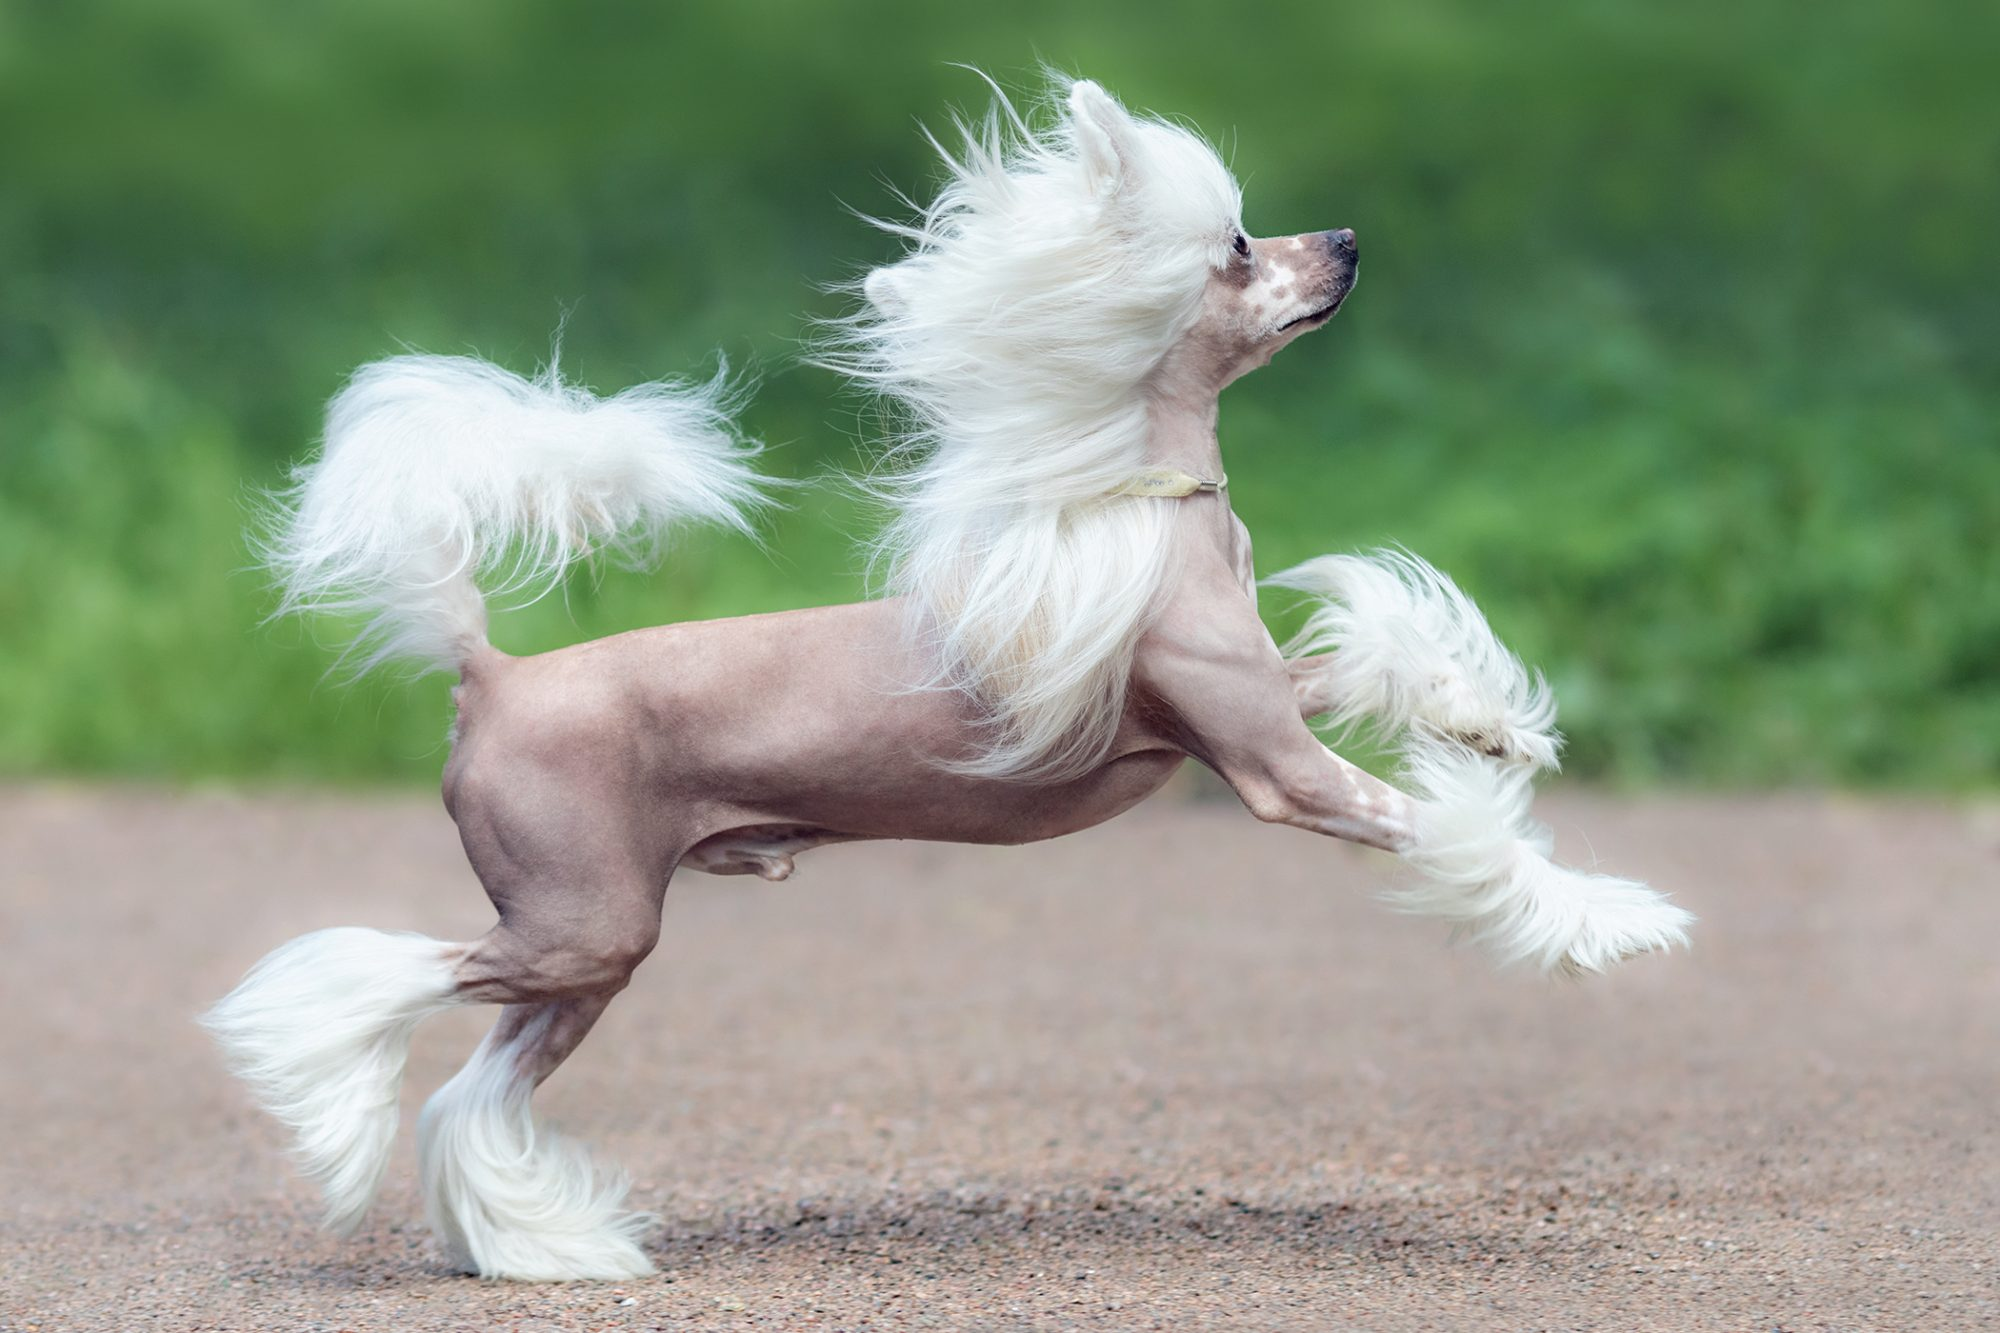 Chinese Crested dog running